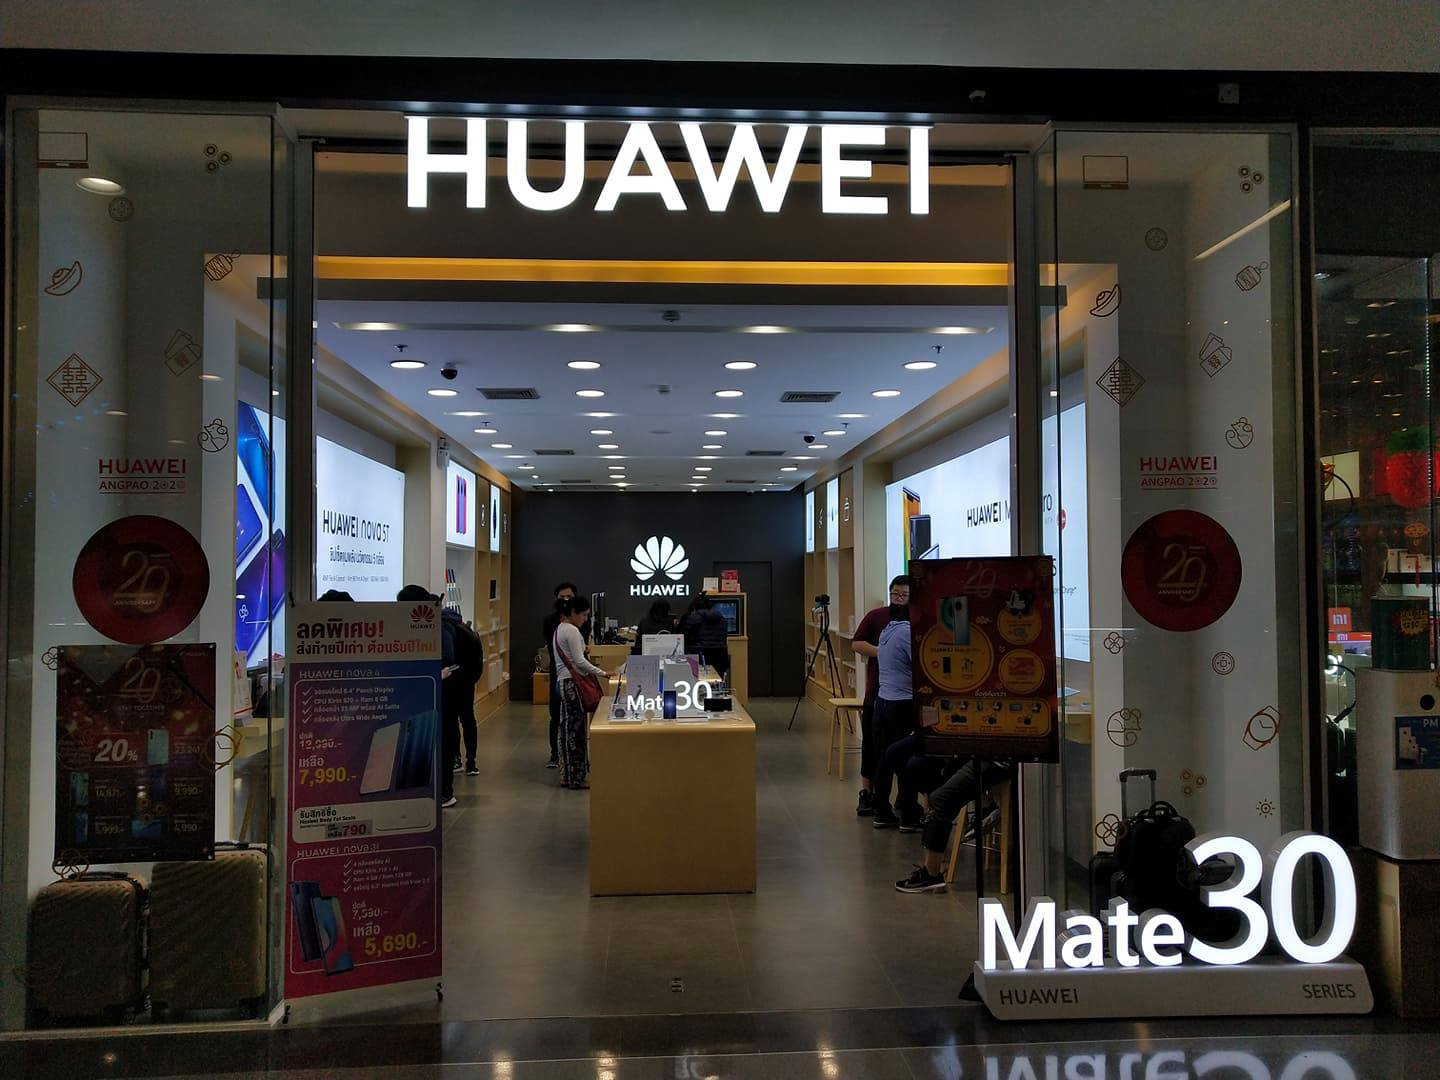 Judge rules Huawei can't sue government over equipment ban